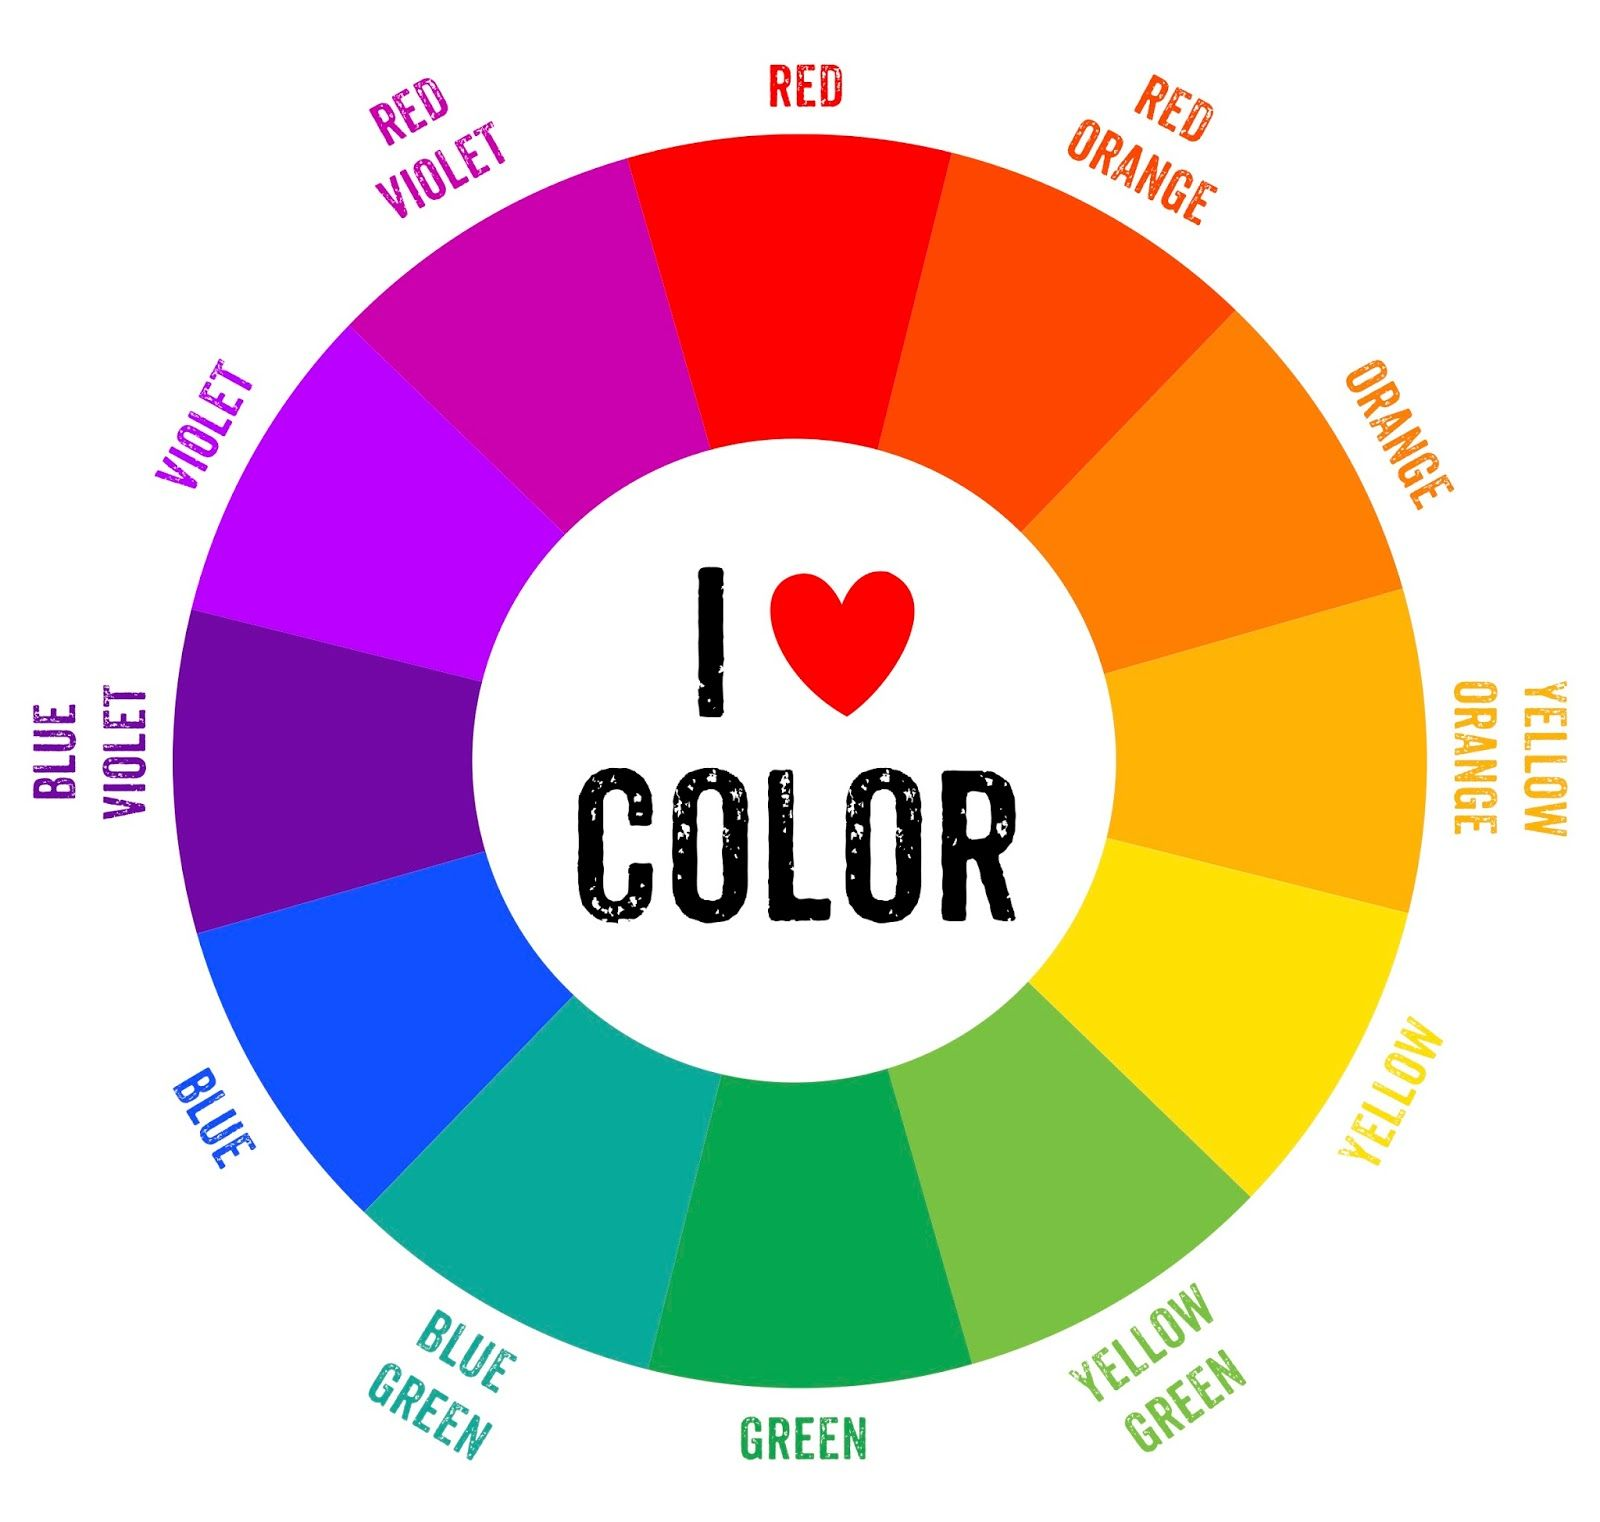 Printable Color Wheel For Lots Of Colorful Activities Little Artists Various Wheels Show Primary Colors Secondary And Tertiary